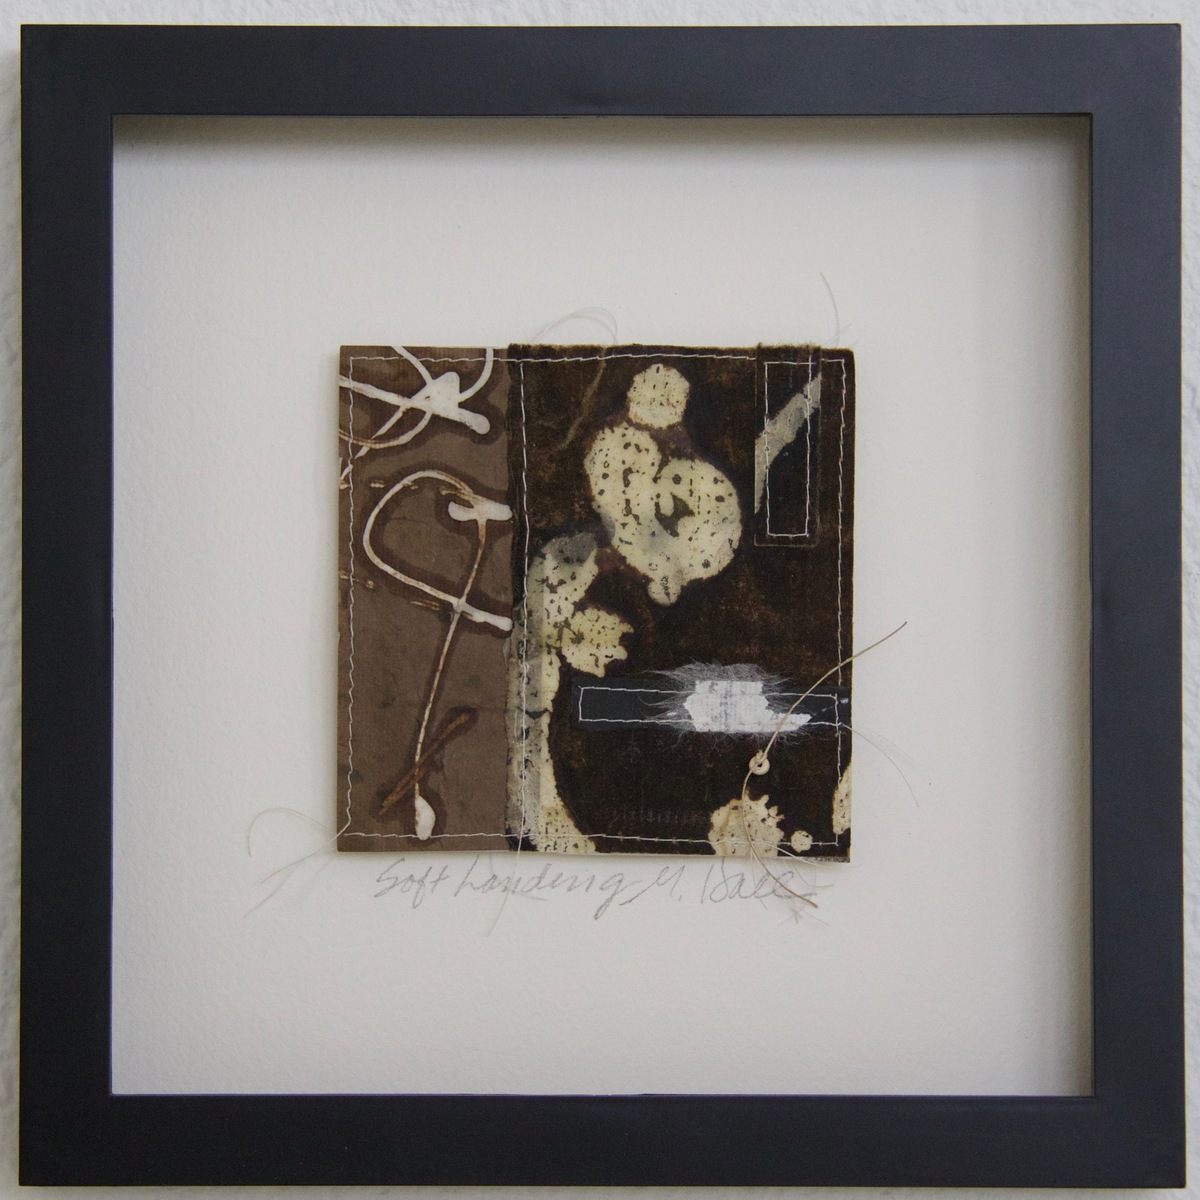 SHOP #Artist Support Pledge 'Soft Landing' (SOLD)